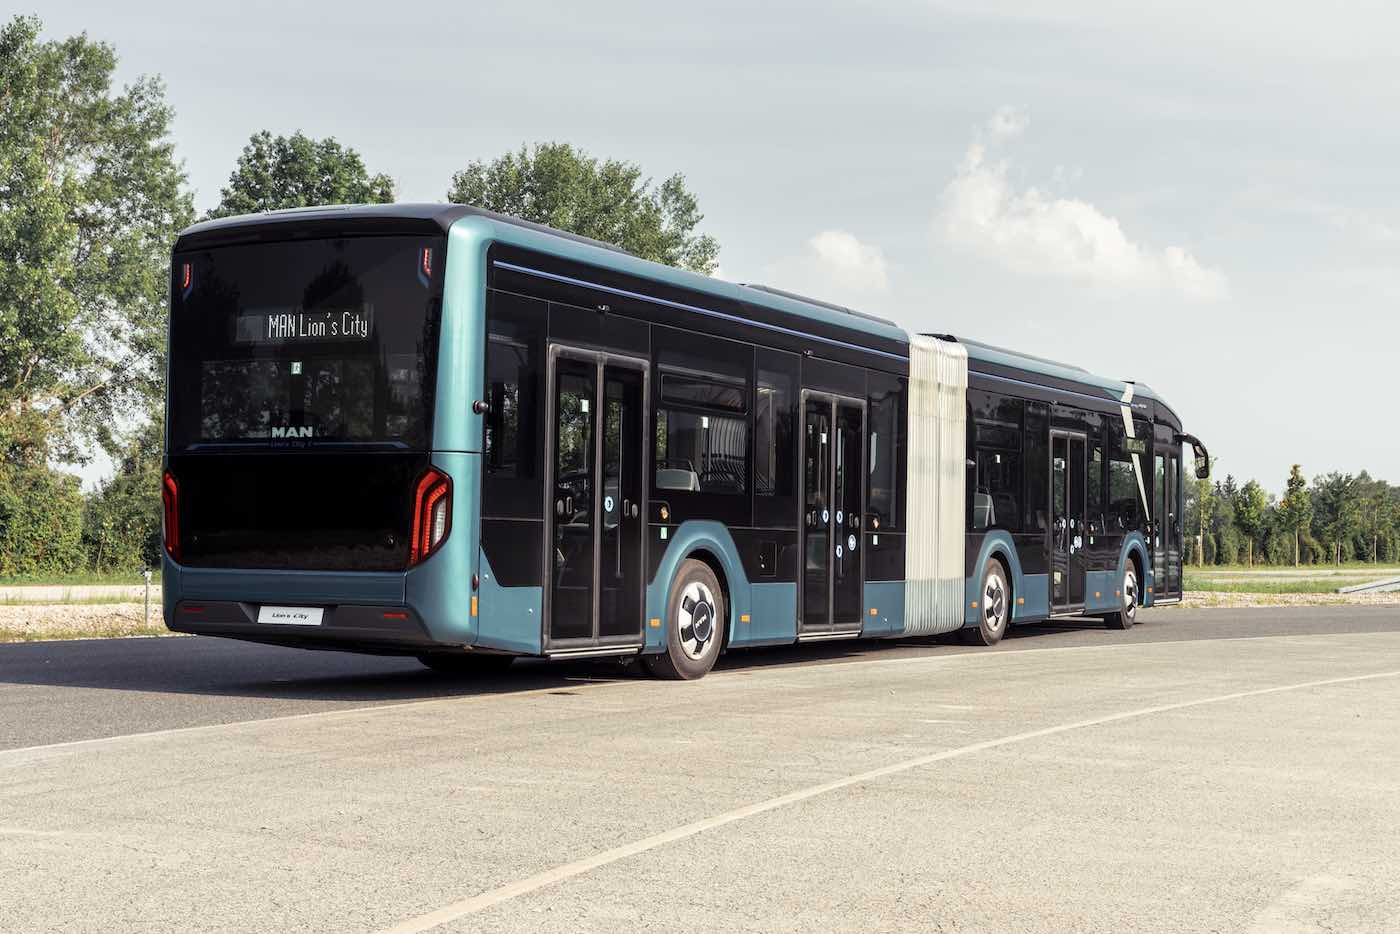 man lion's city 18 e articulated electric bus